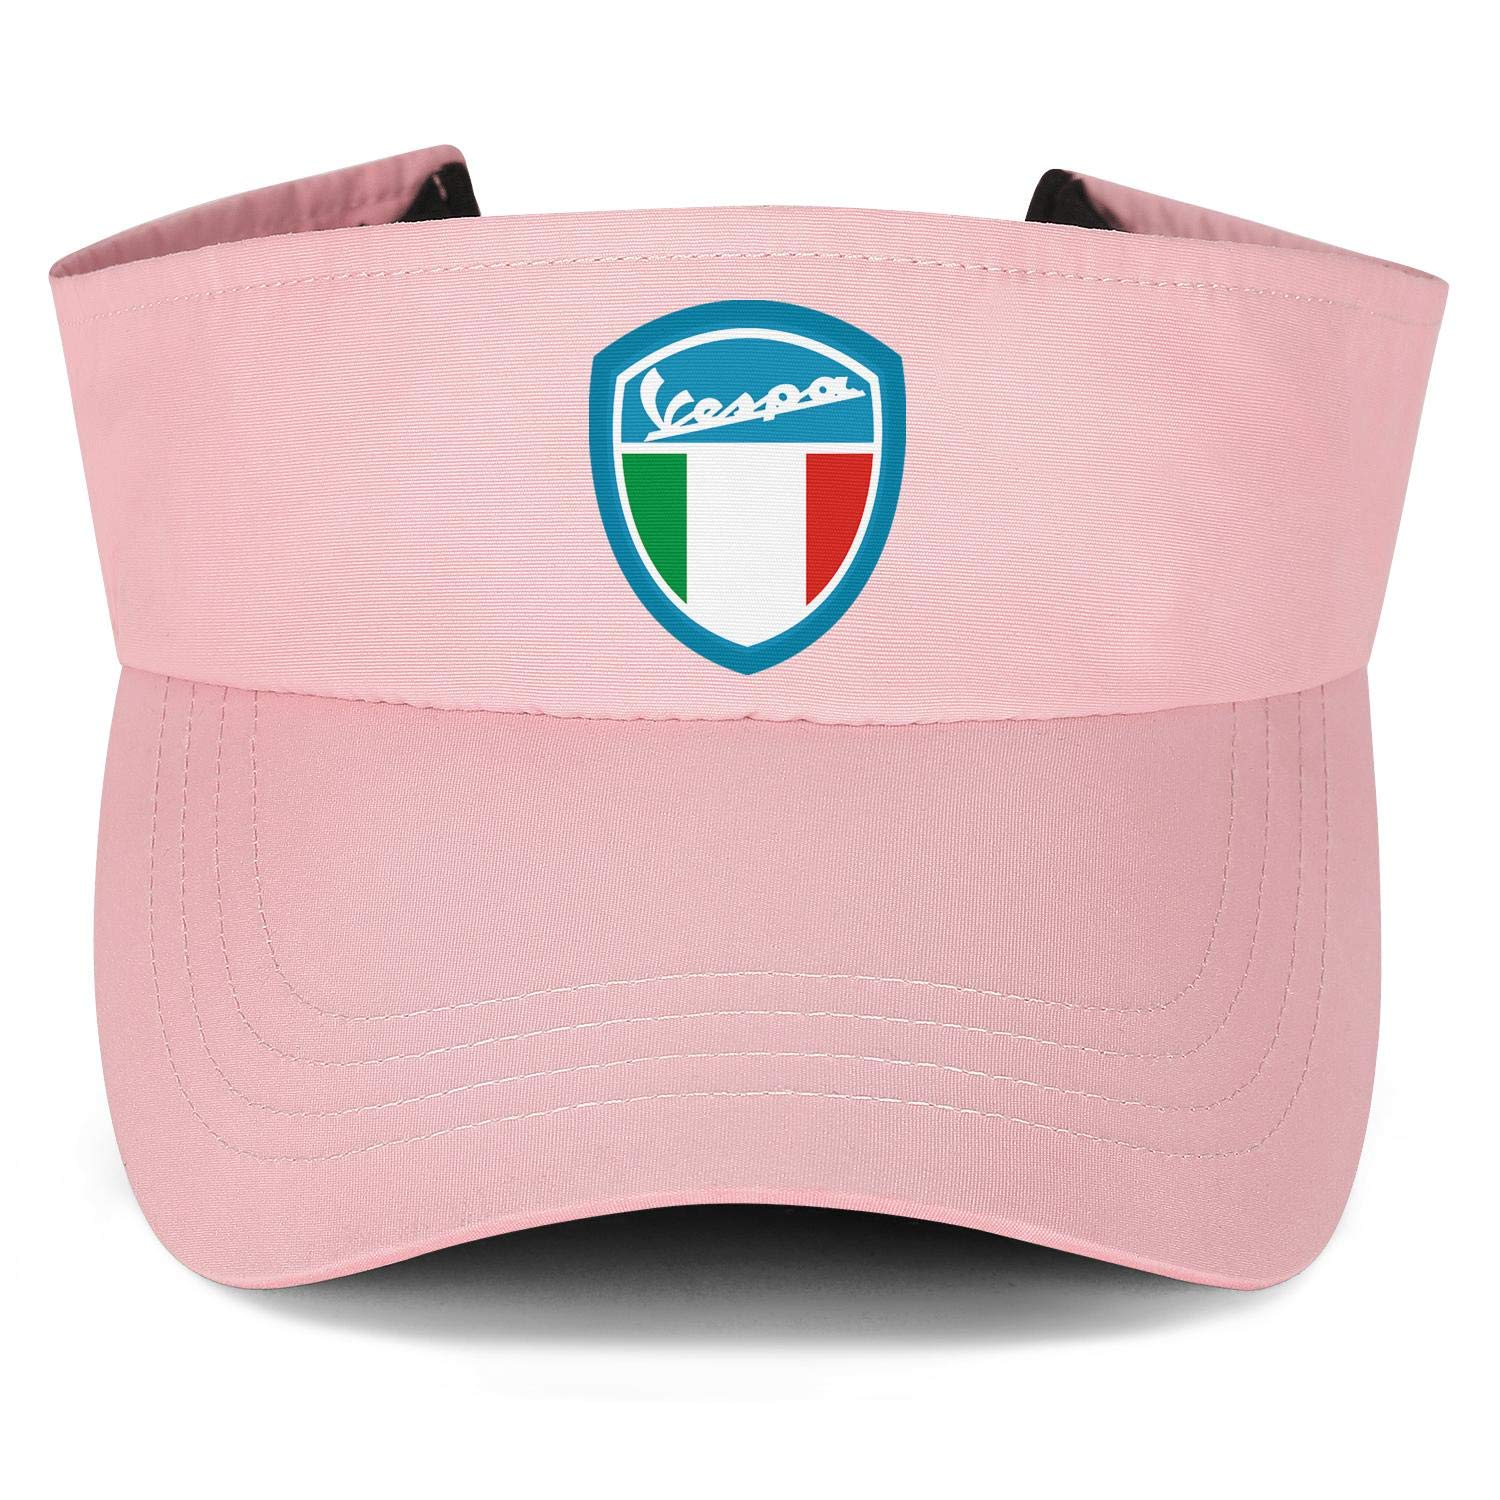 Vespa-Logo Men Women Hats Sun Visor Cap Custom Hat Adjustable Fits Caps